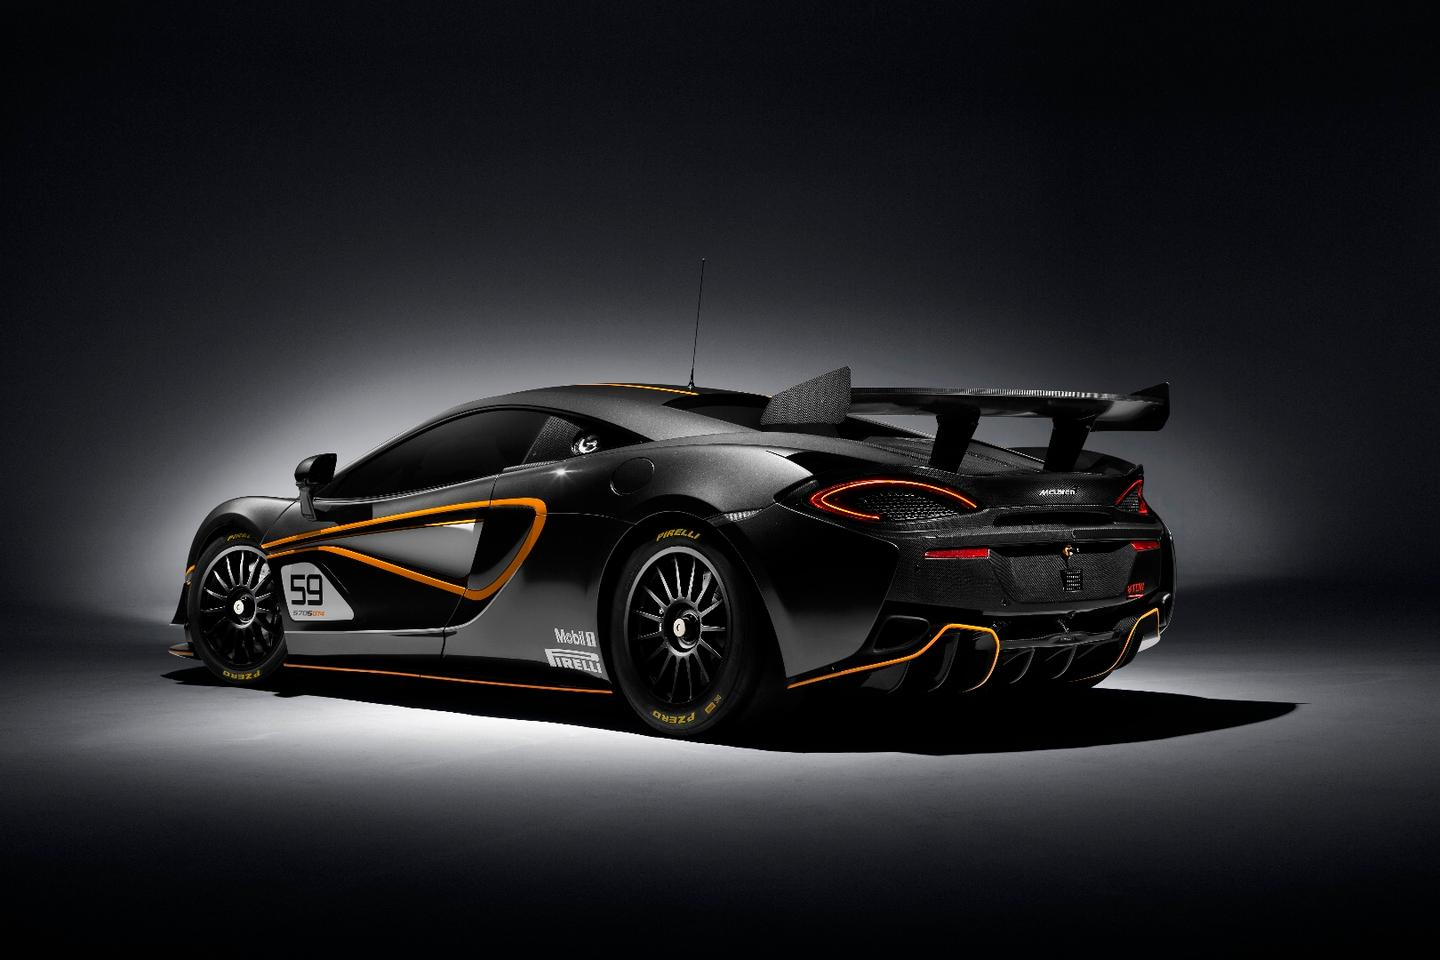 The 570S GT4 is fitted with a bespoke aerodynamics kit